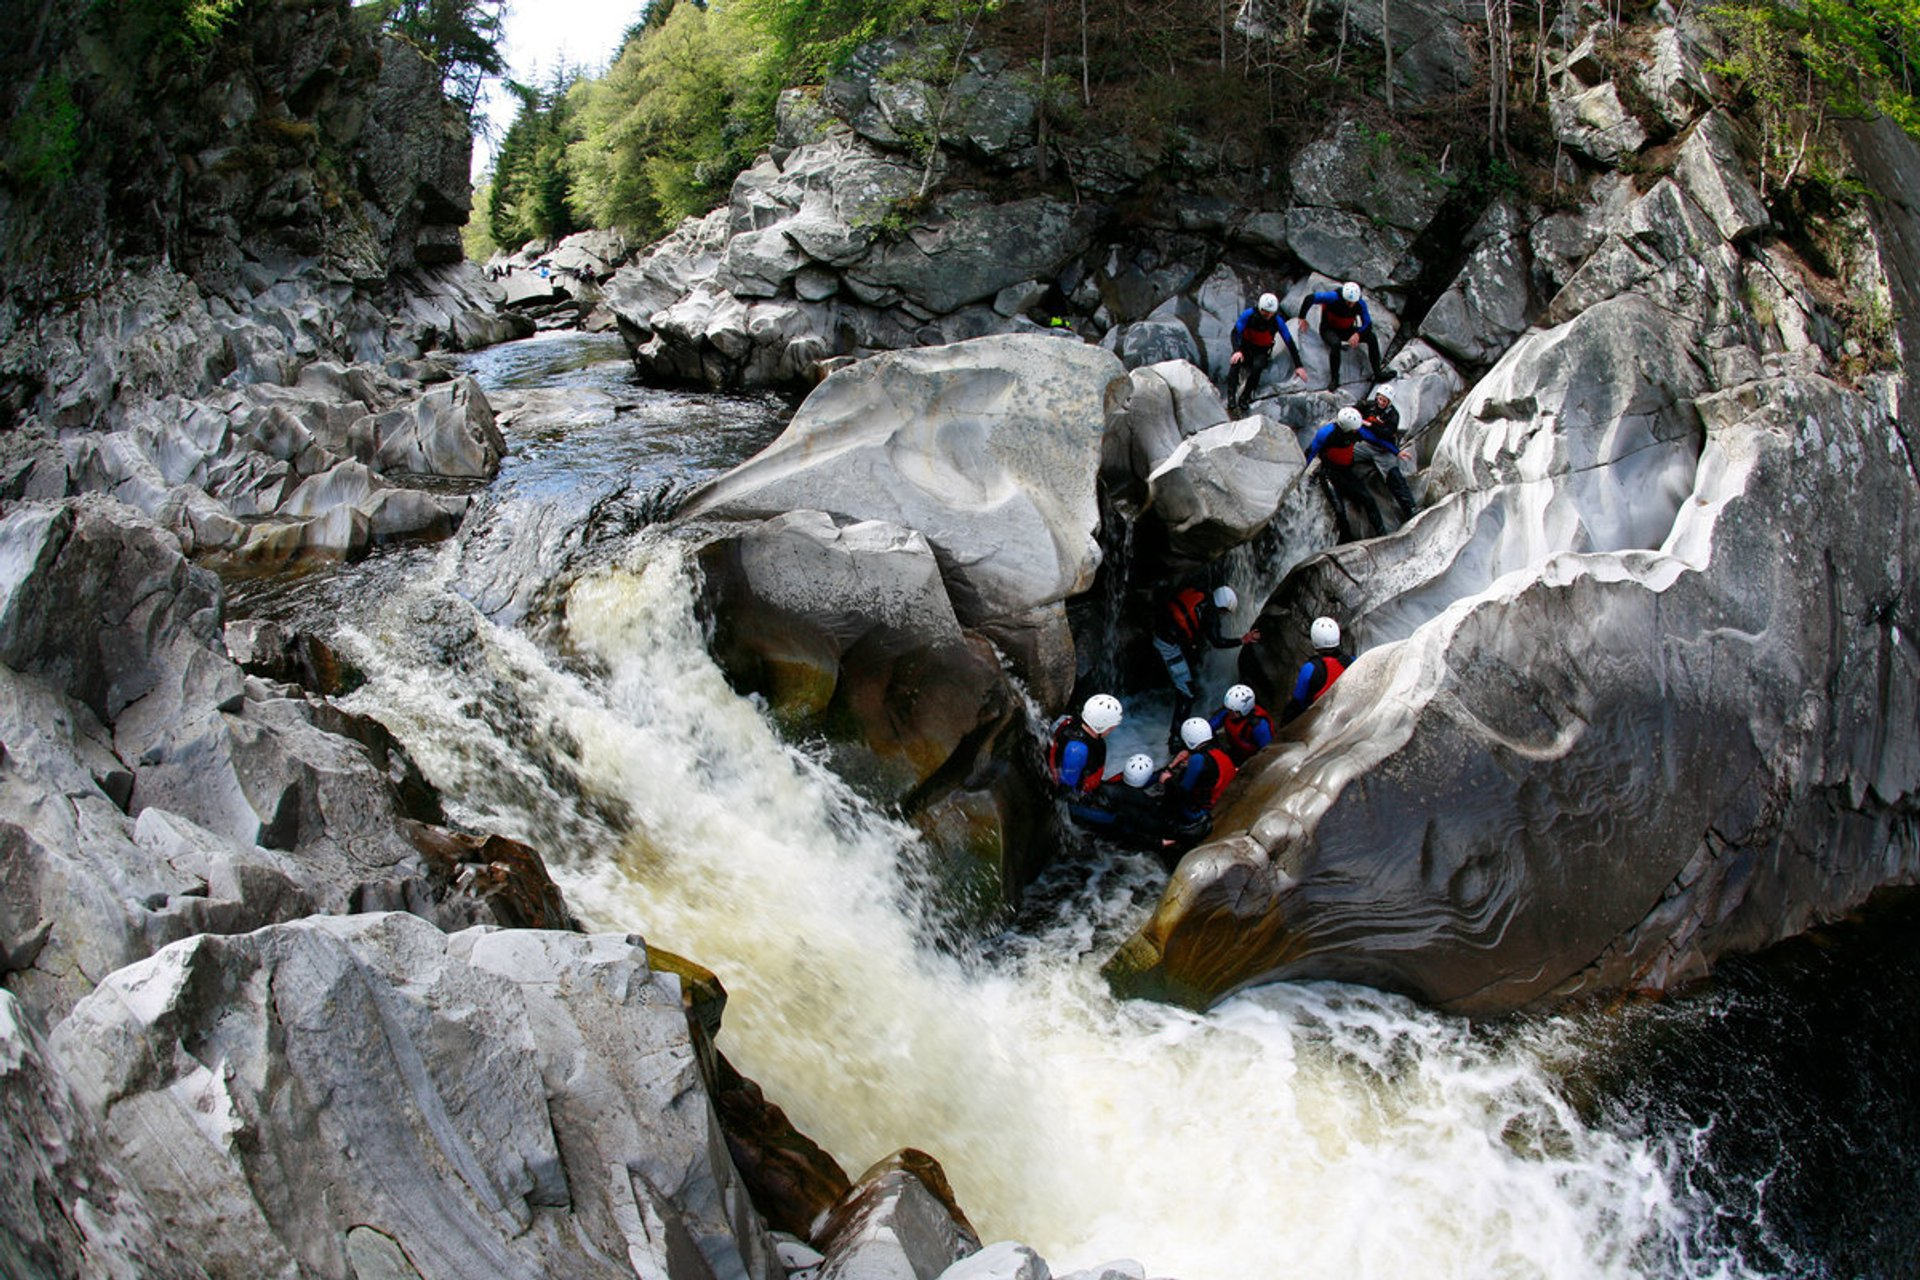 Canyoning and Gorge Walking in Scotland - Best Season 2020